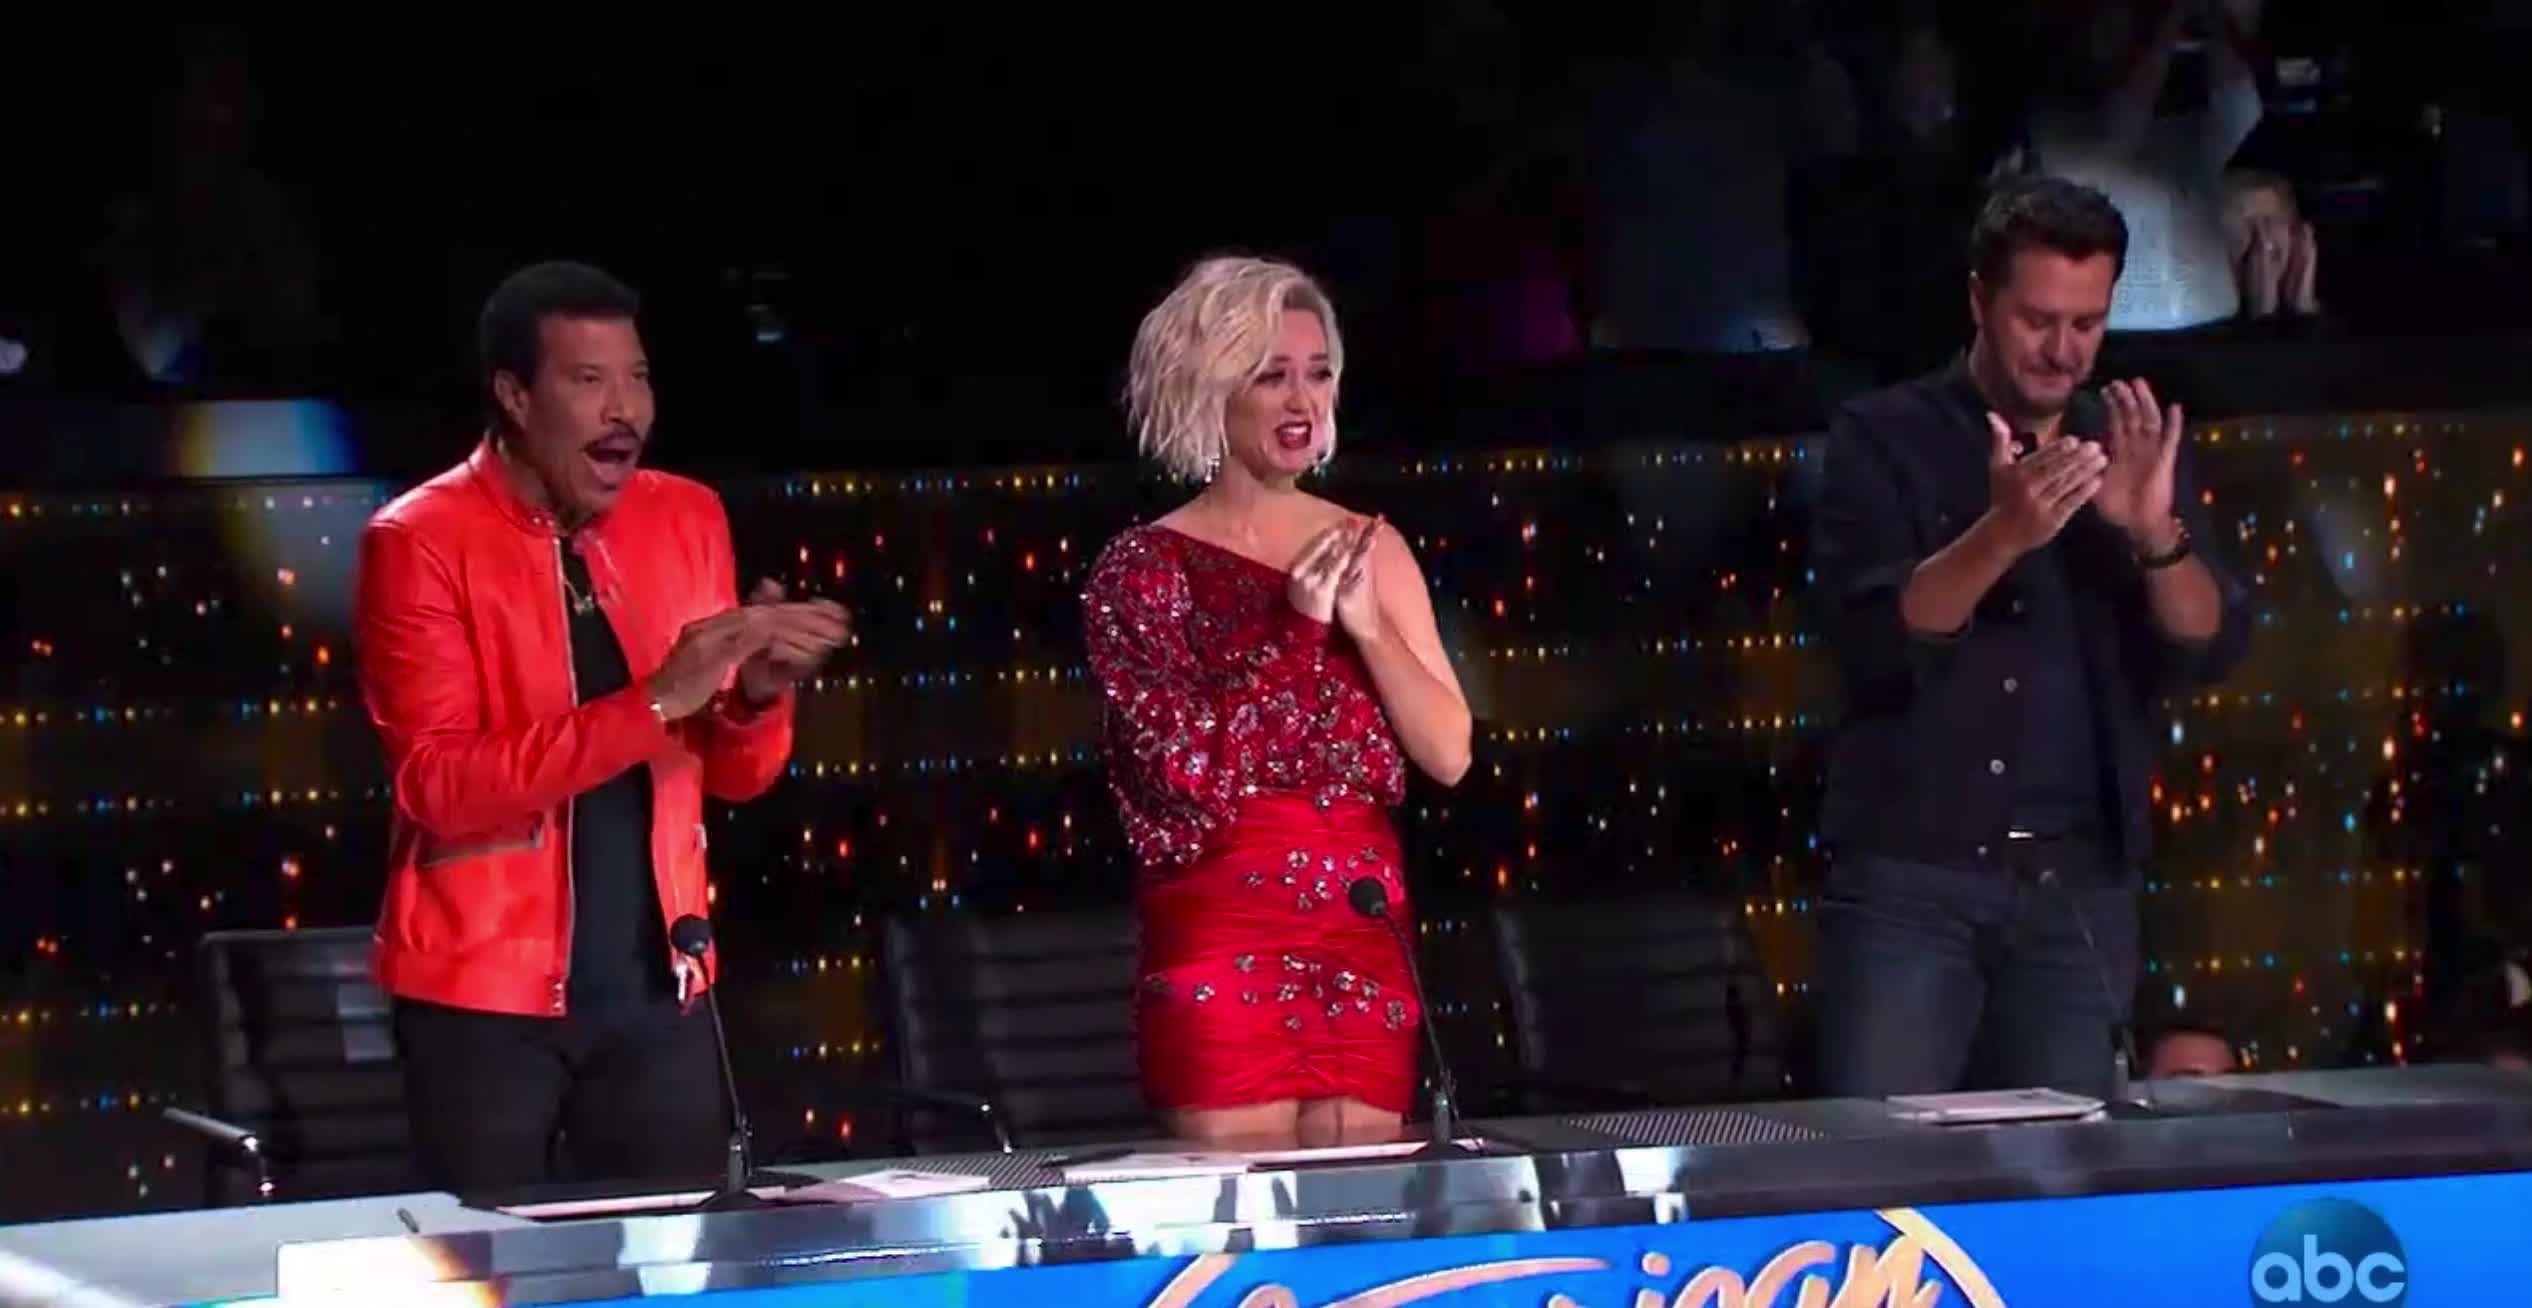 american idol, american idol season 17, americanidol, applause, clap, clapping, jeremiah lloyd harmon, judges, katy perry, lionel richie, luke bryan, ryan seacrest, season 17, American Idol Judges Applaud Jeremiah GIFs